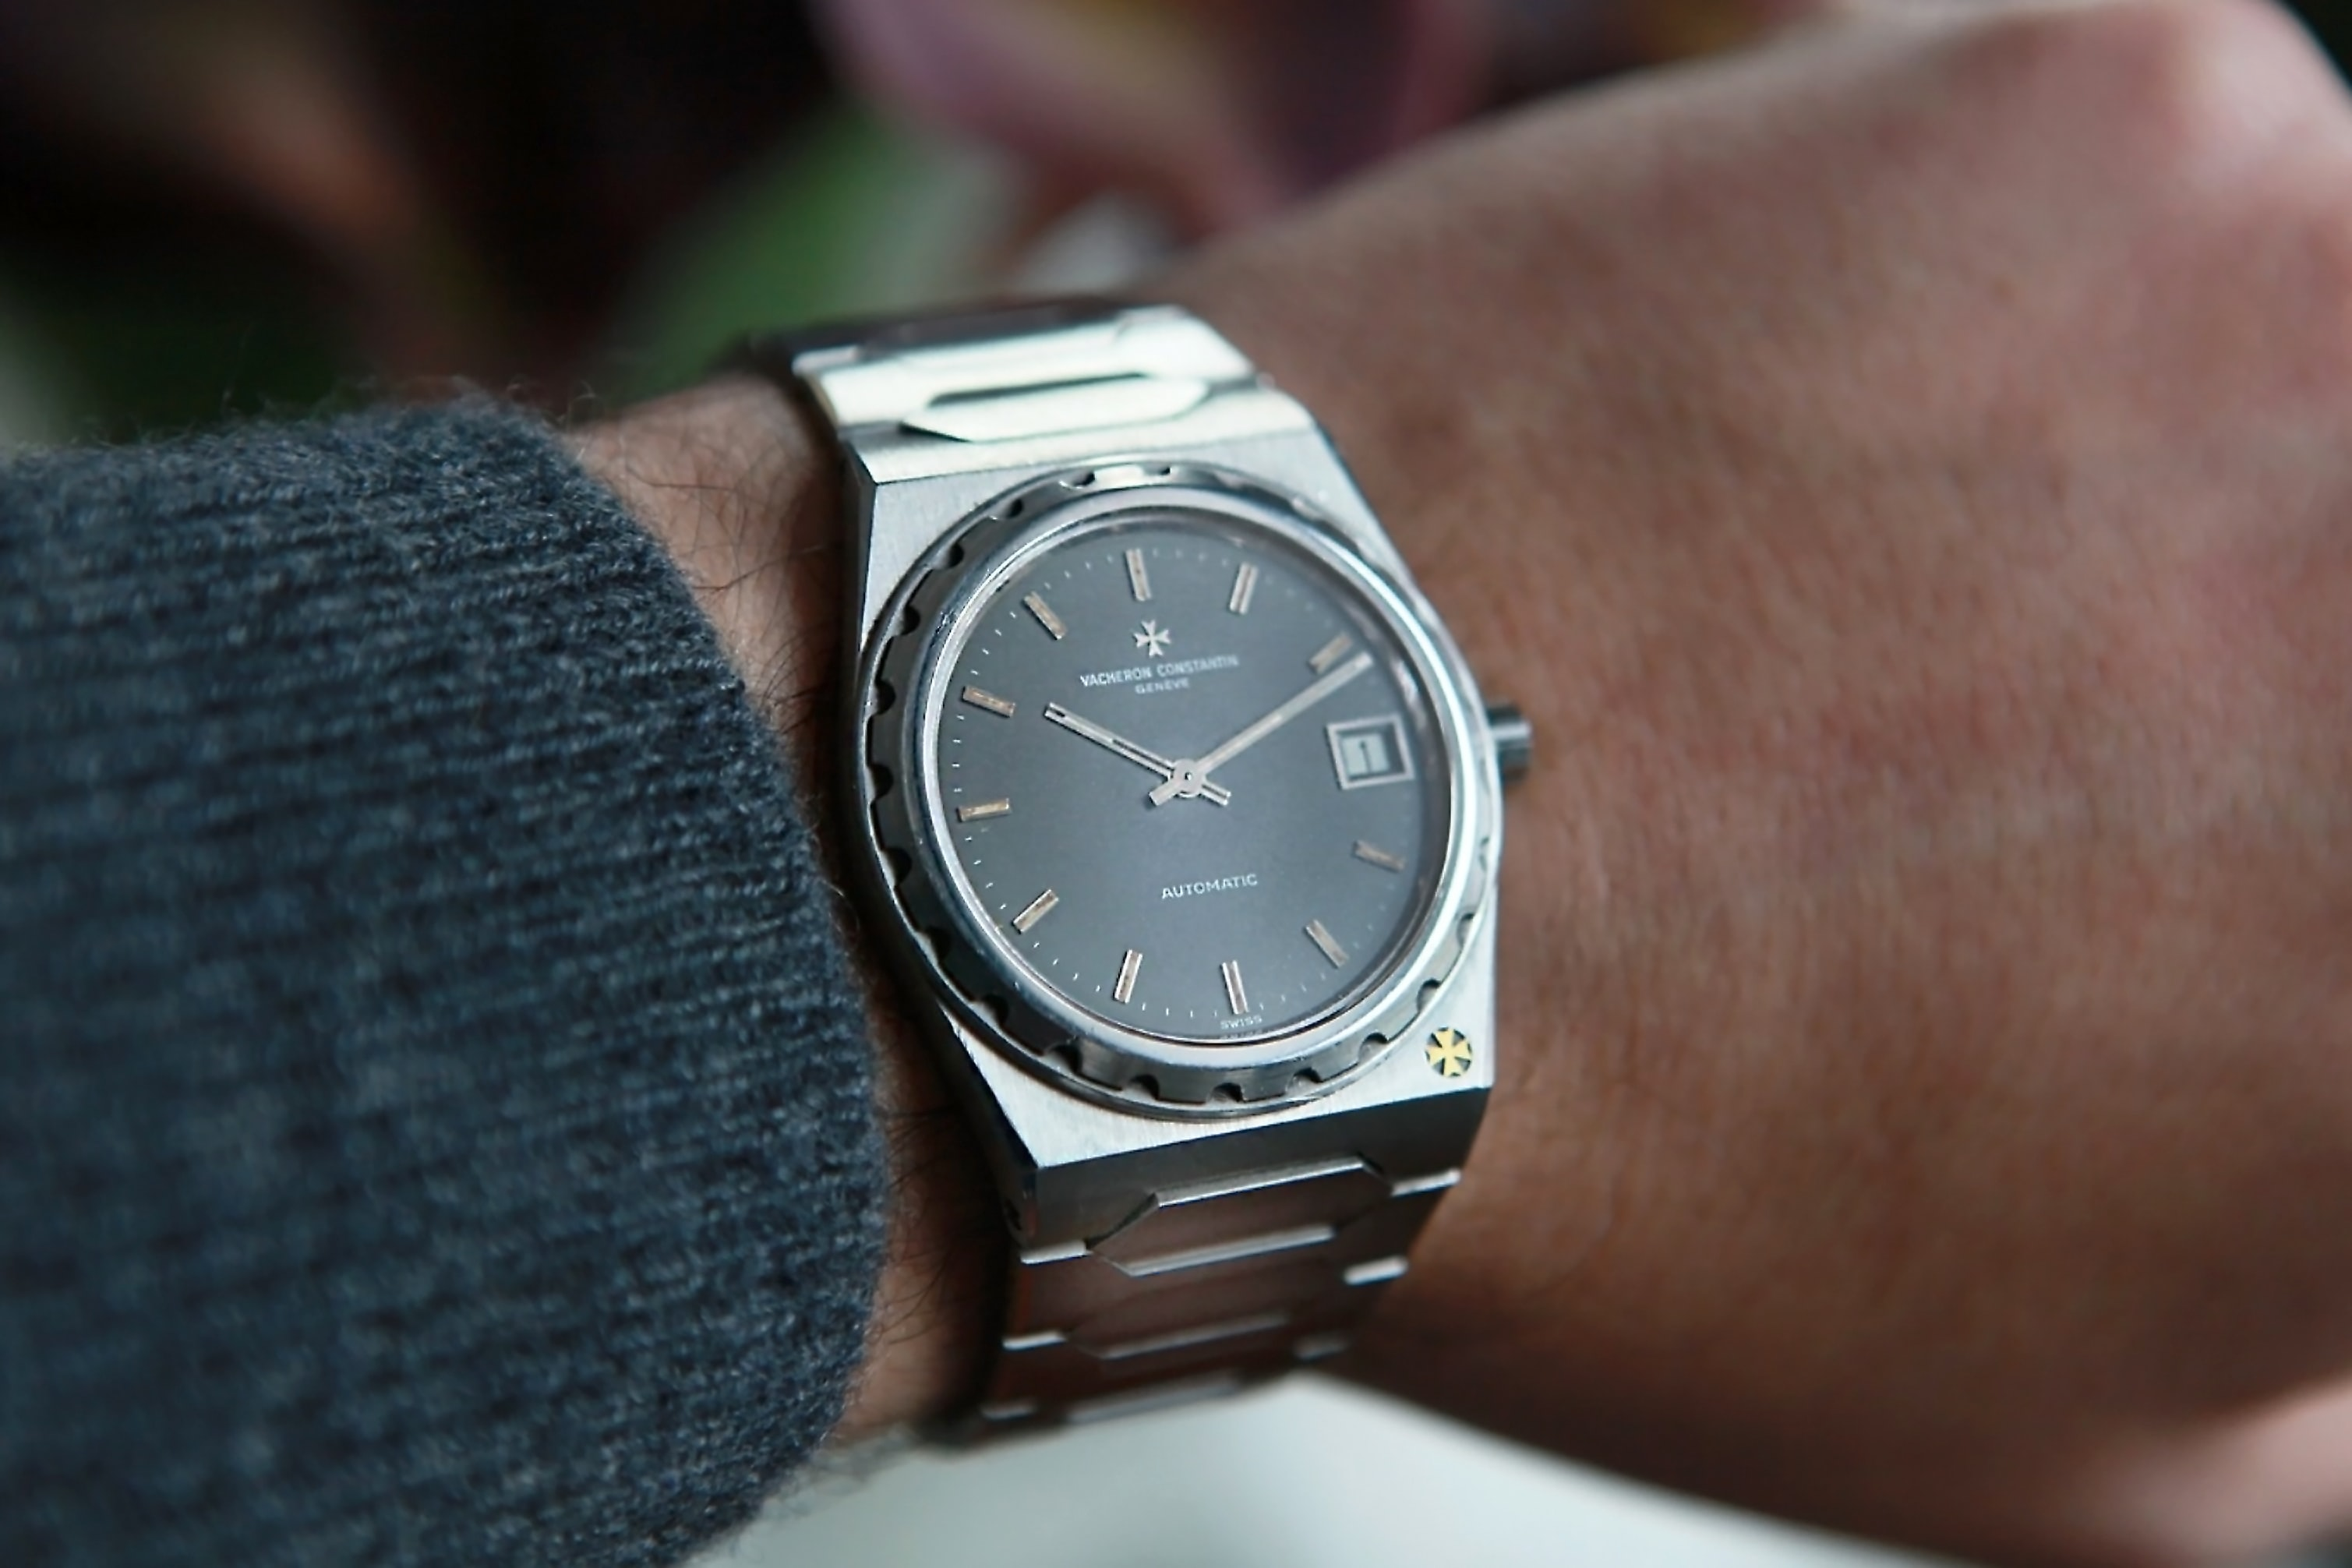 Three On Three: Comparing The Vacheron Constantin Overseas, The Piaget Polo S, And The Audemars Piguet Royal Oak 15400 Three On Three: Comparing The Vacheron Constantin Overseas, The Piaget Polo S, And The Audemars Piguet Royal Oak 15400 0011